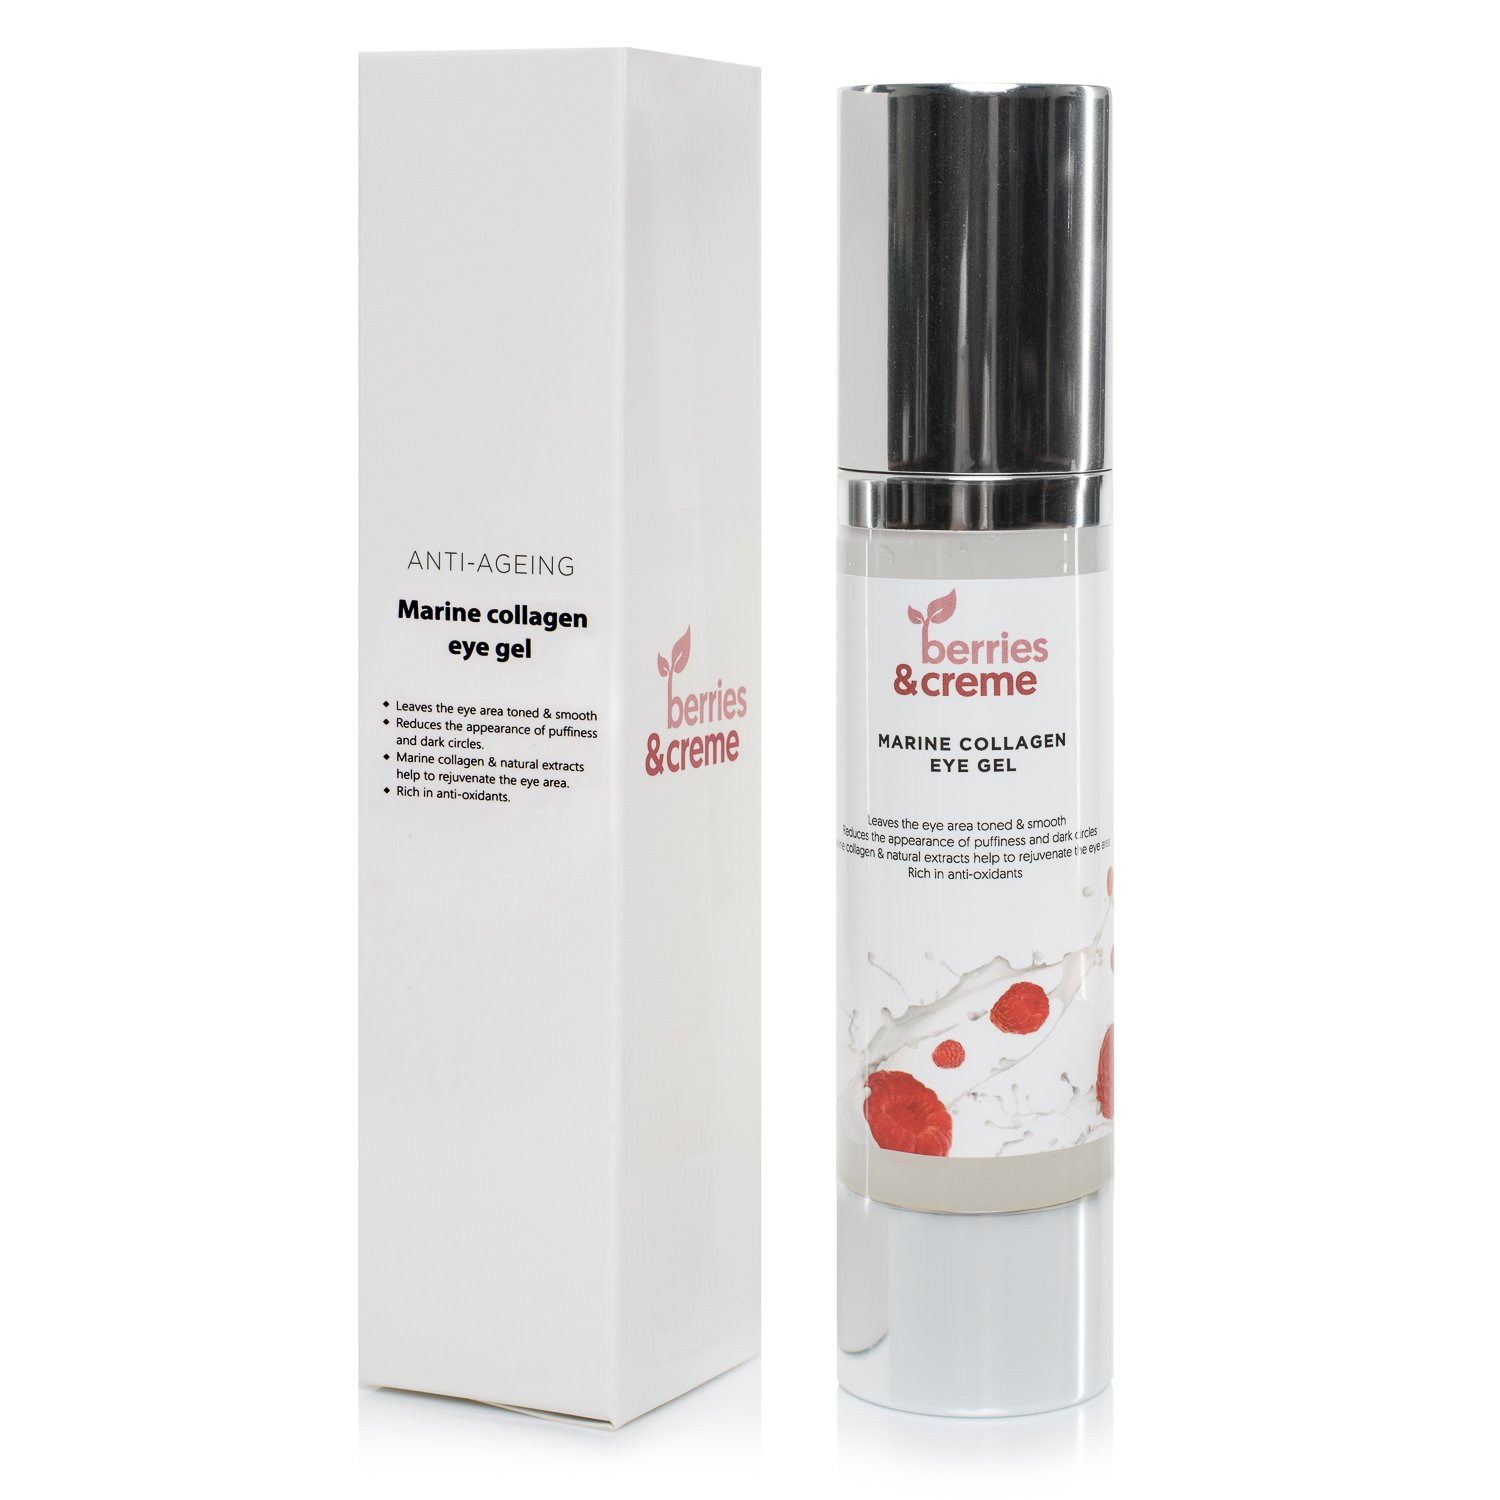 Berries and Creme Marine Collagen eye gel - THE ANTI AGEING MIRACLE EYELIFT for reduction of dark circles and wrinkles Berries & Creme